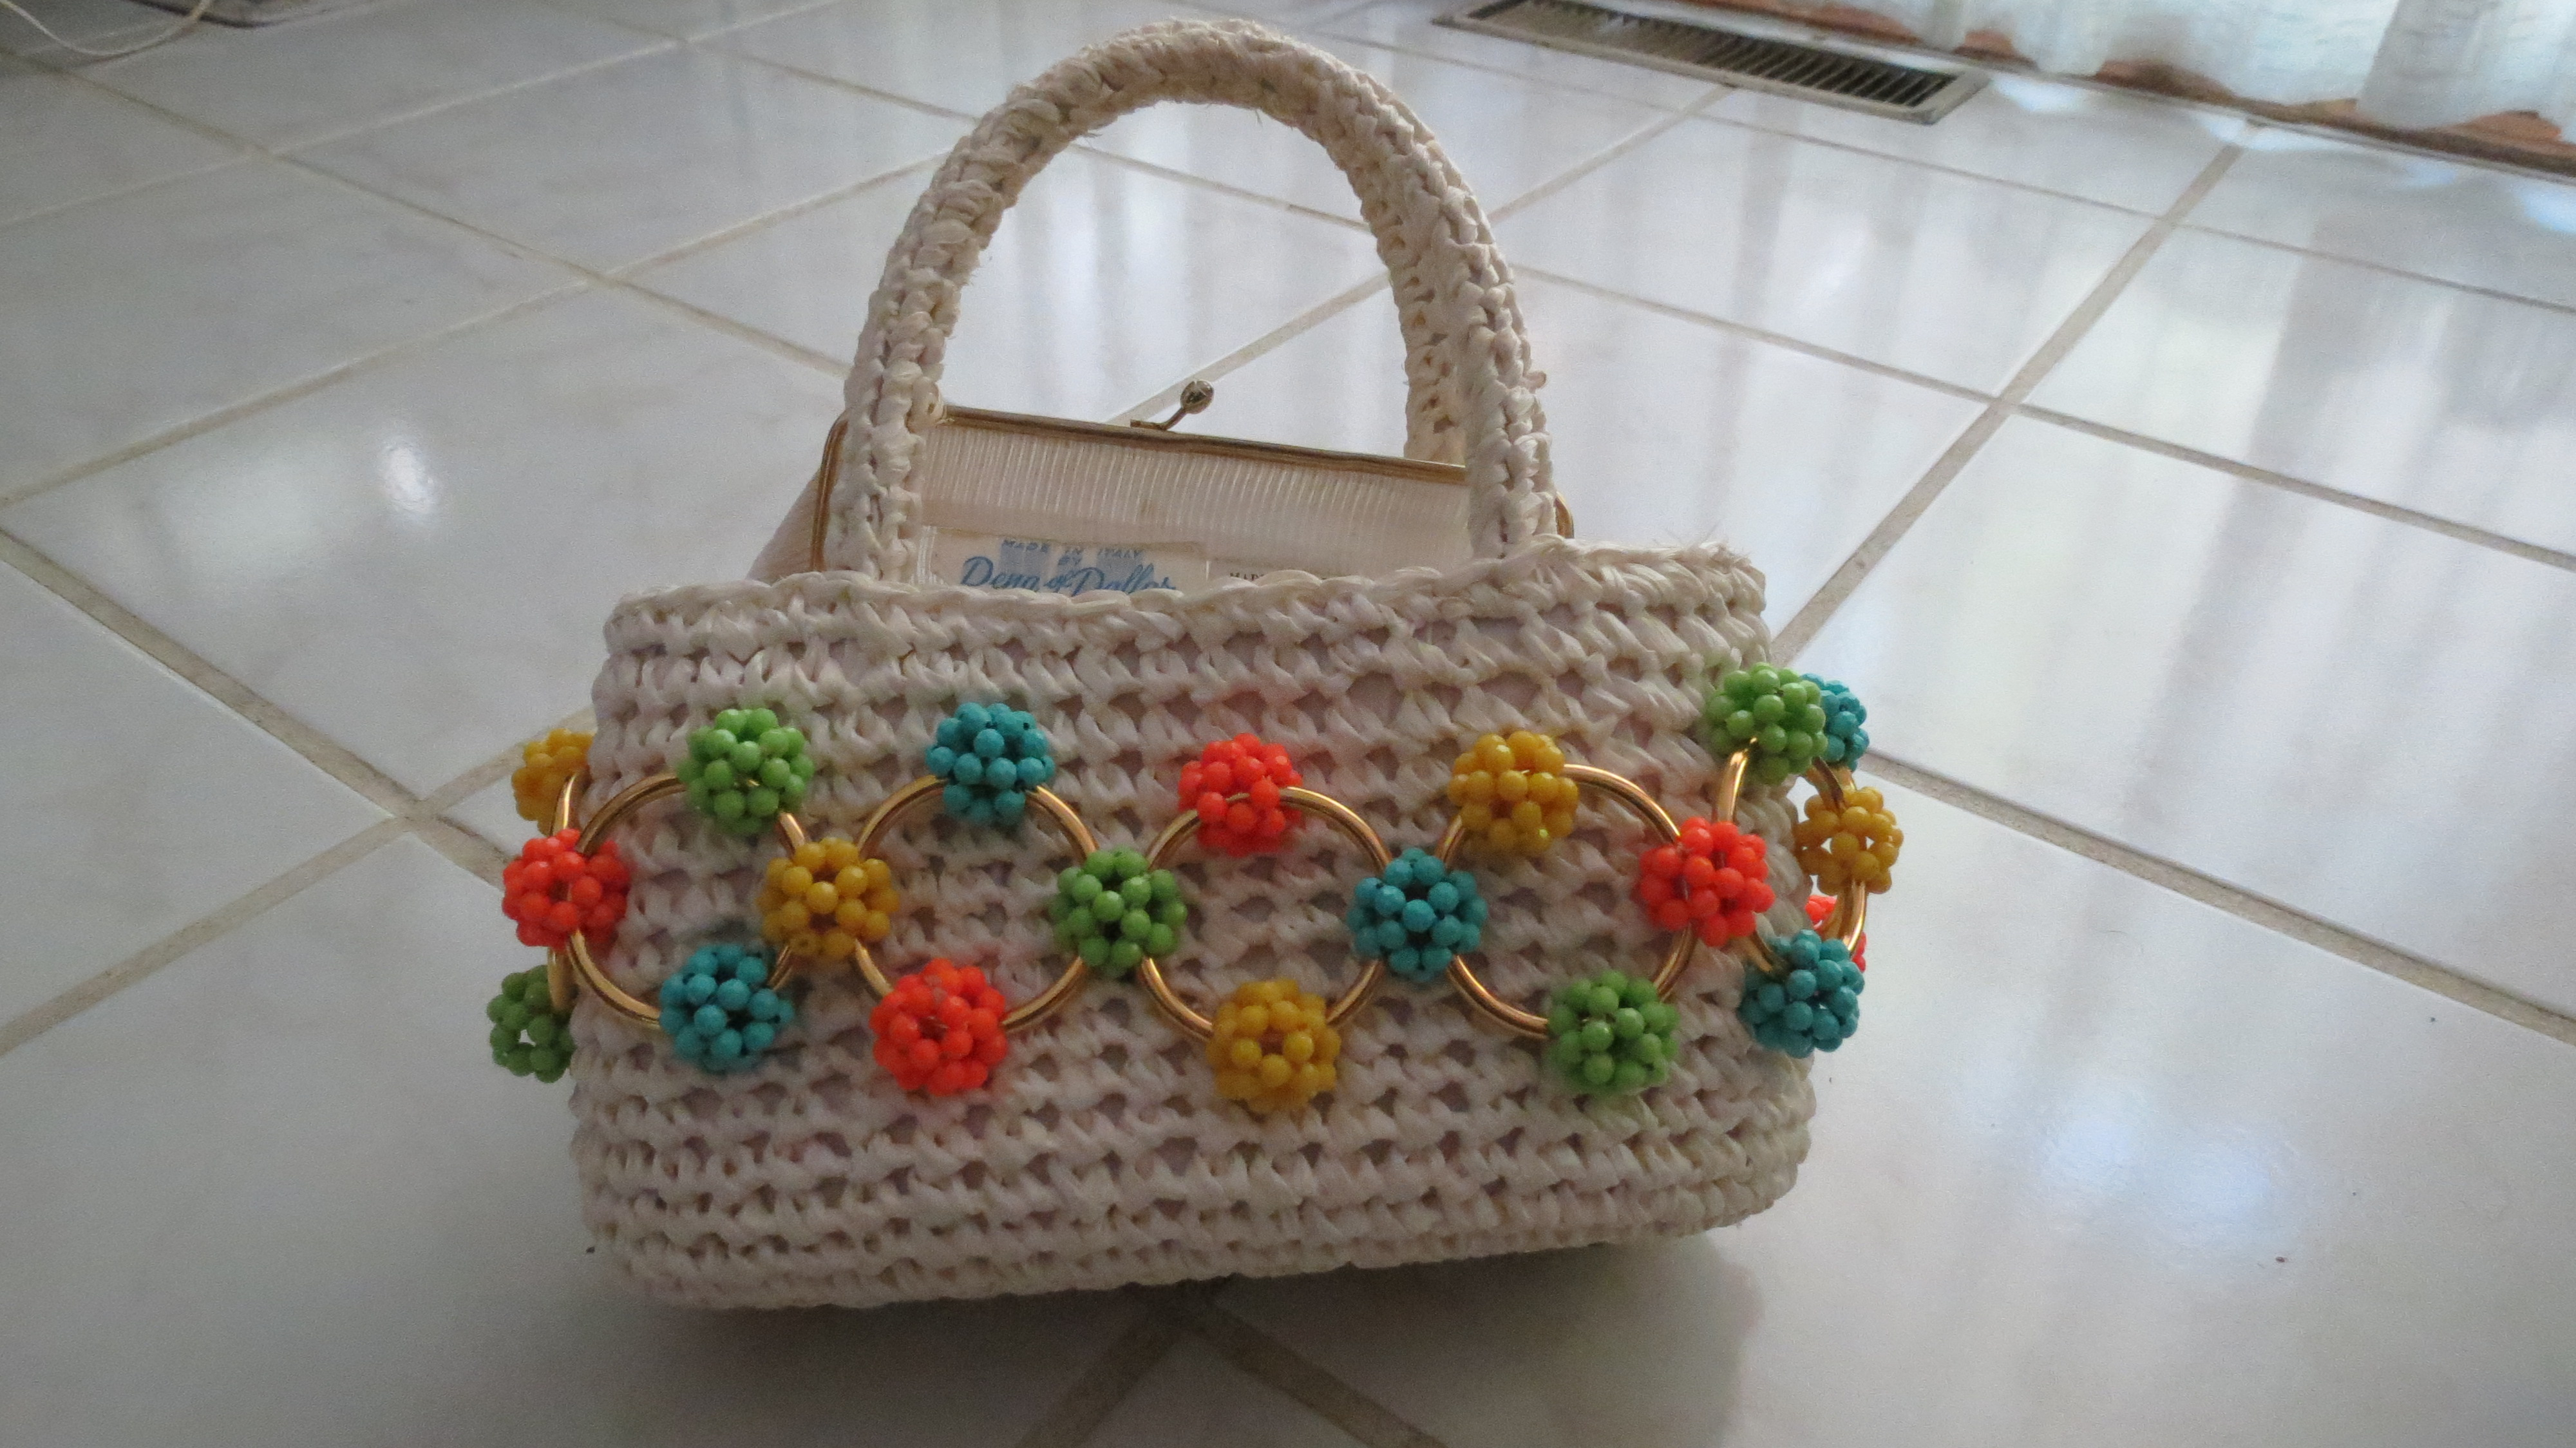 ANOTHER ITALIAN CUTIE - TRUE VINTAGE HANDMADE SUMMER PURSE FROM THE 1960'S